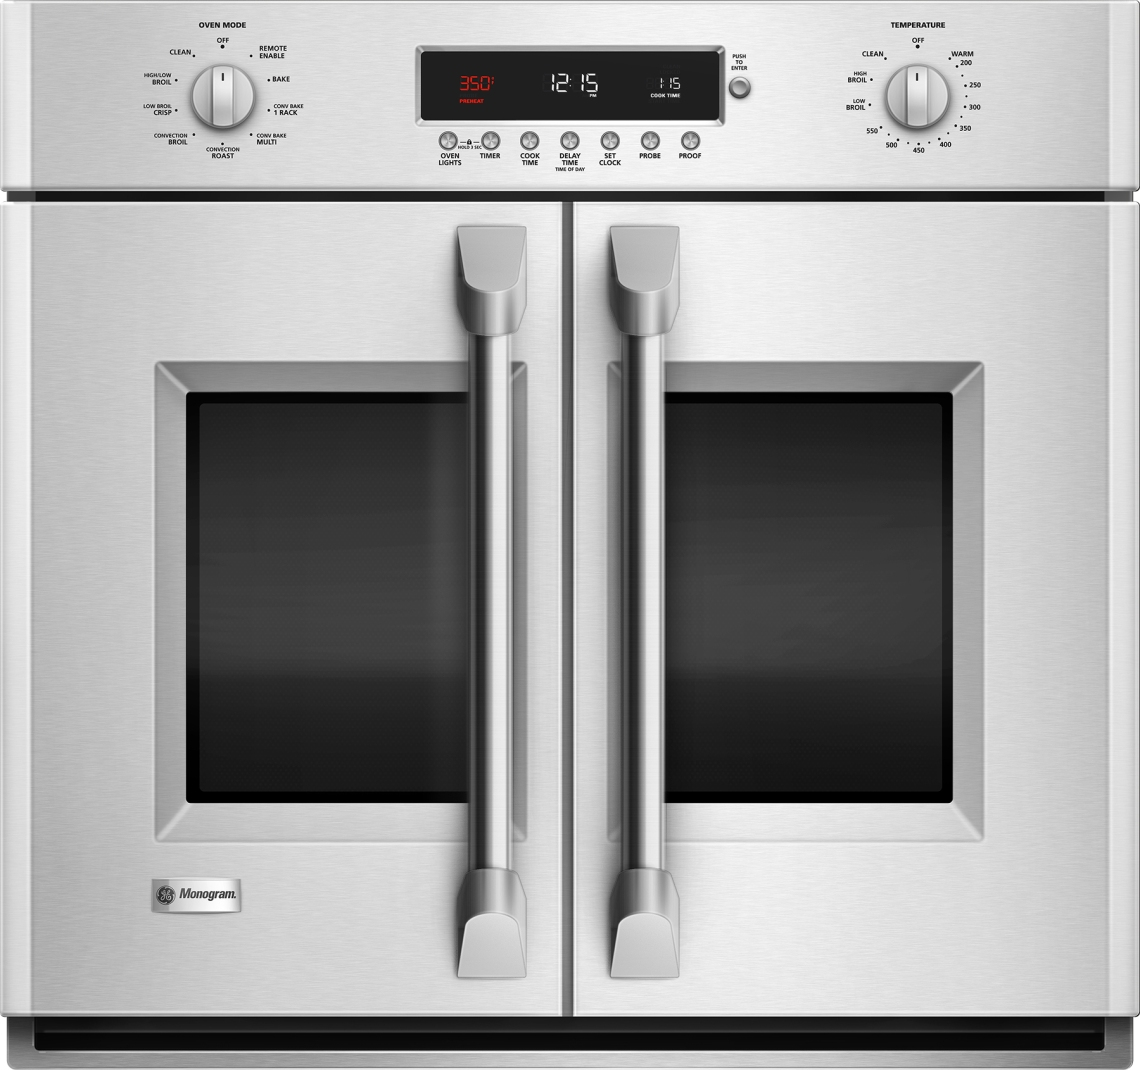 New GE Monogram French door wall oven